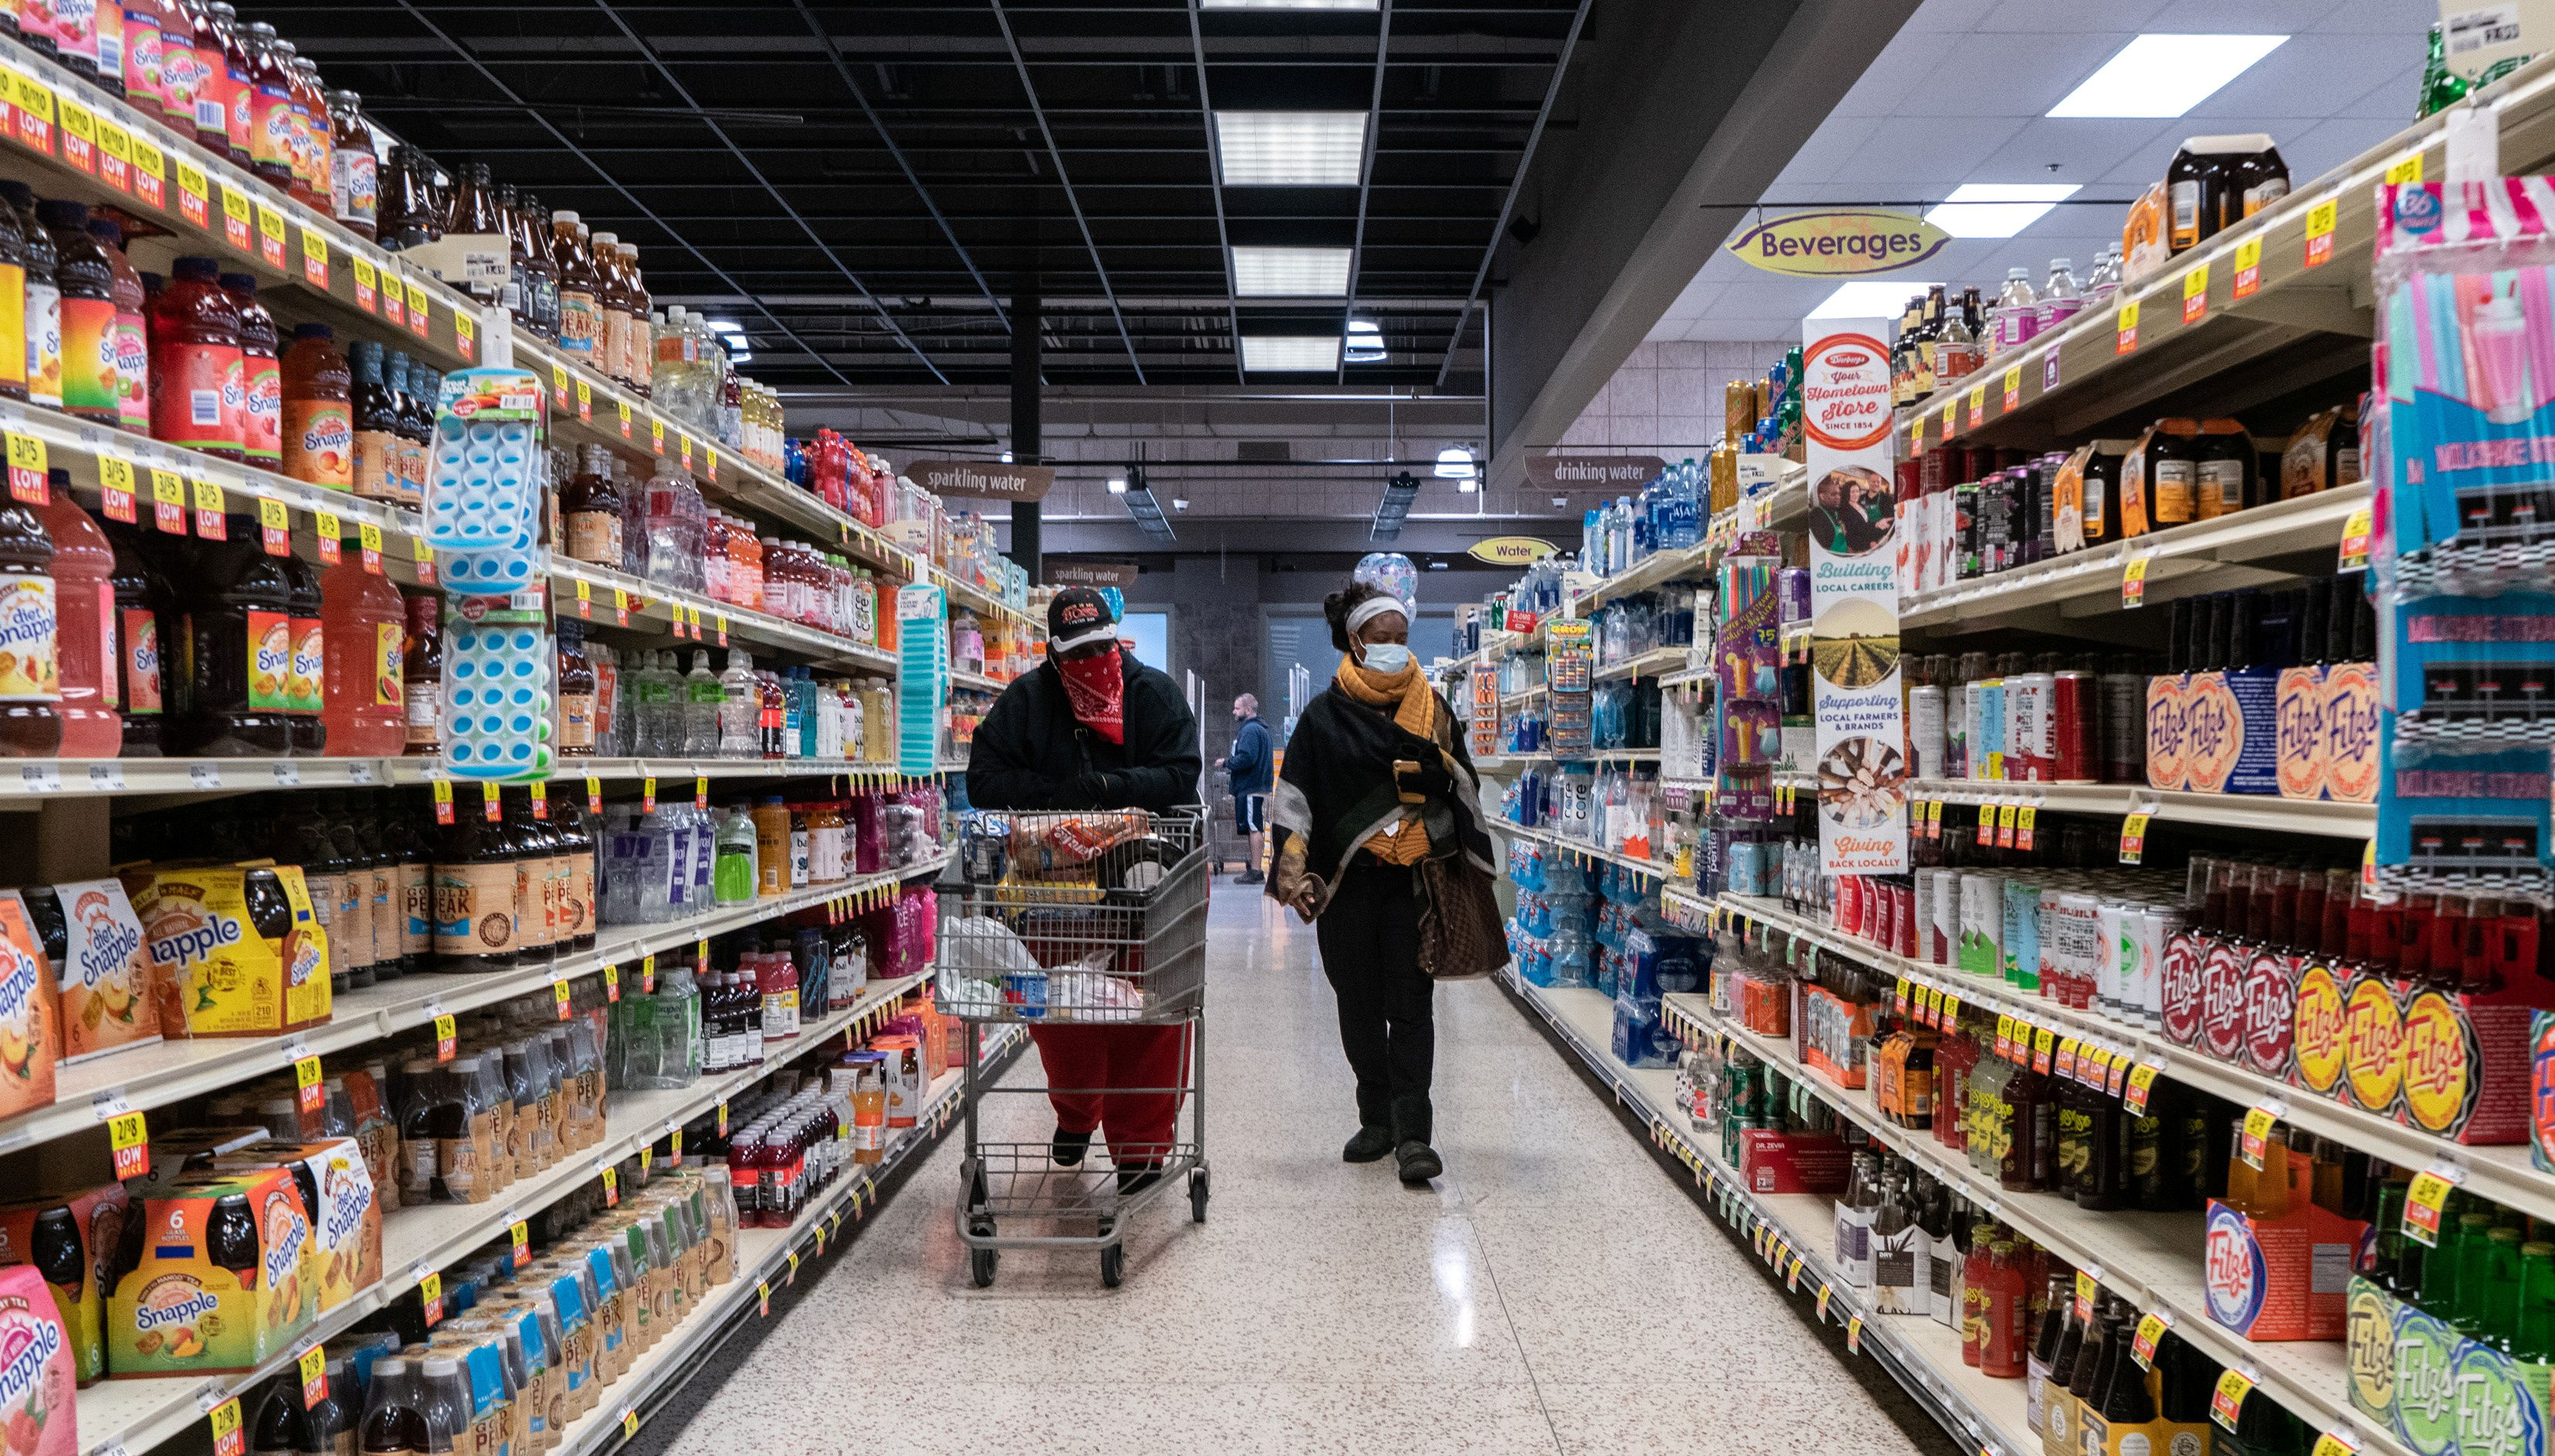 Shoppers browse in a supermarket while wearing masks to help slow the spread of coronavirus disease (COVID-19) in north St. Louis, Missouri, U.S. April 4, 2020. REUTERS/Lawrence Bryant